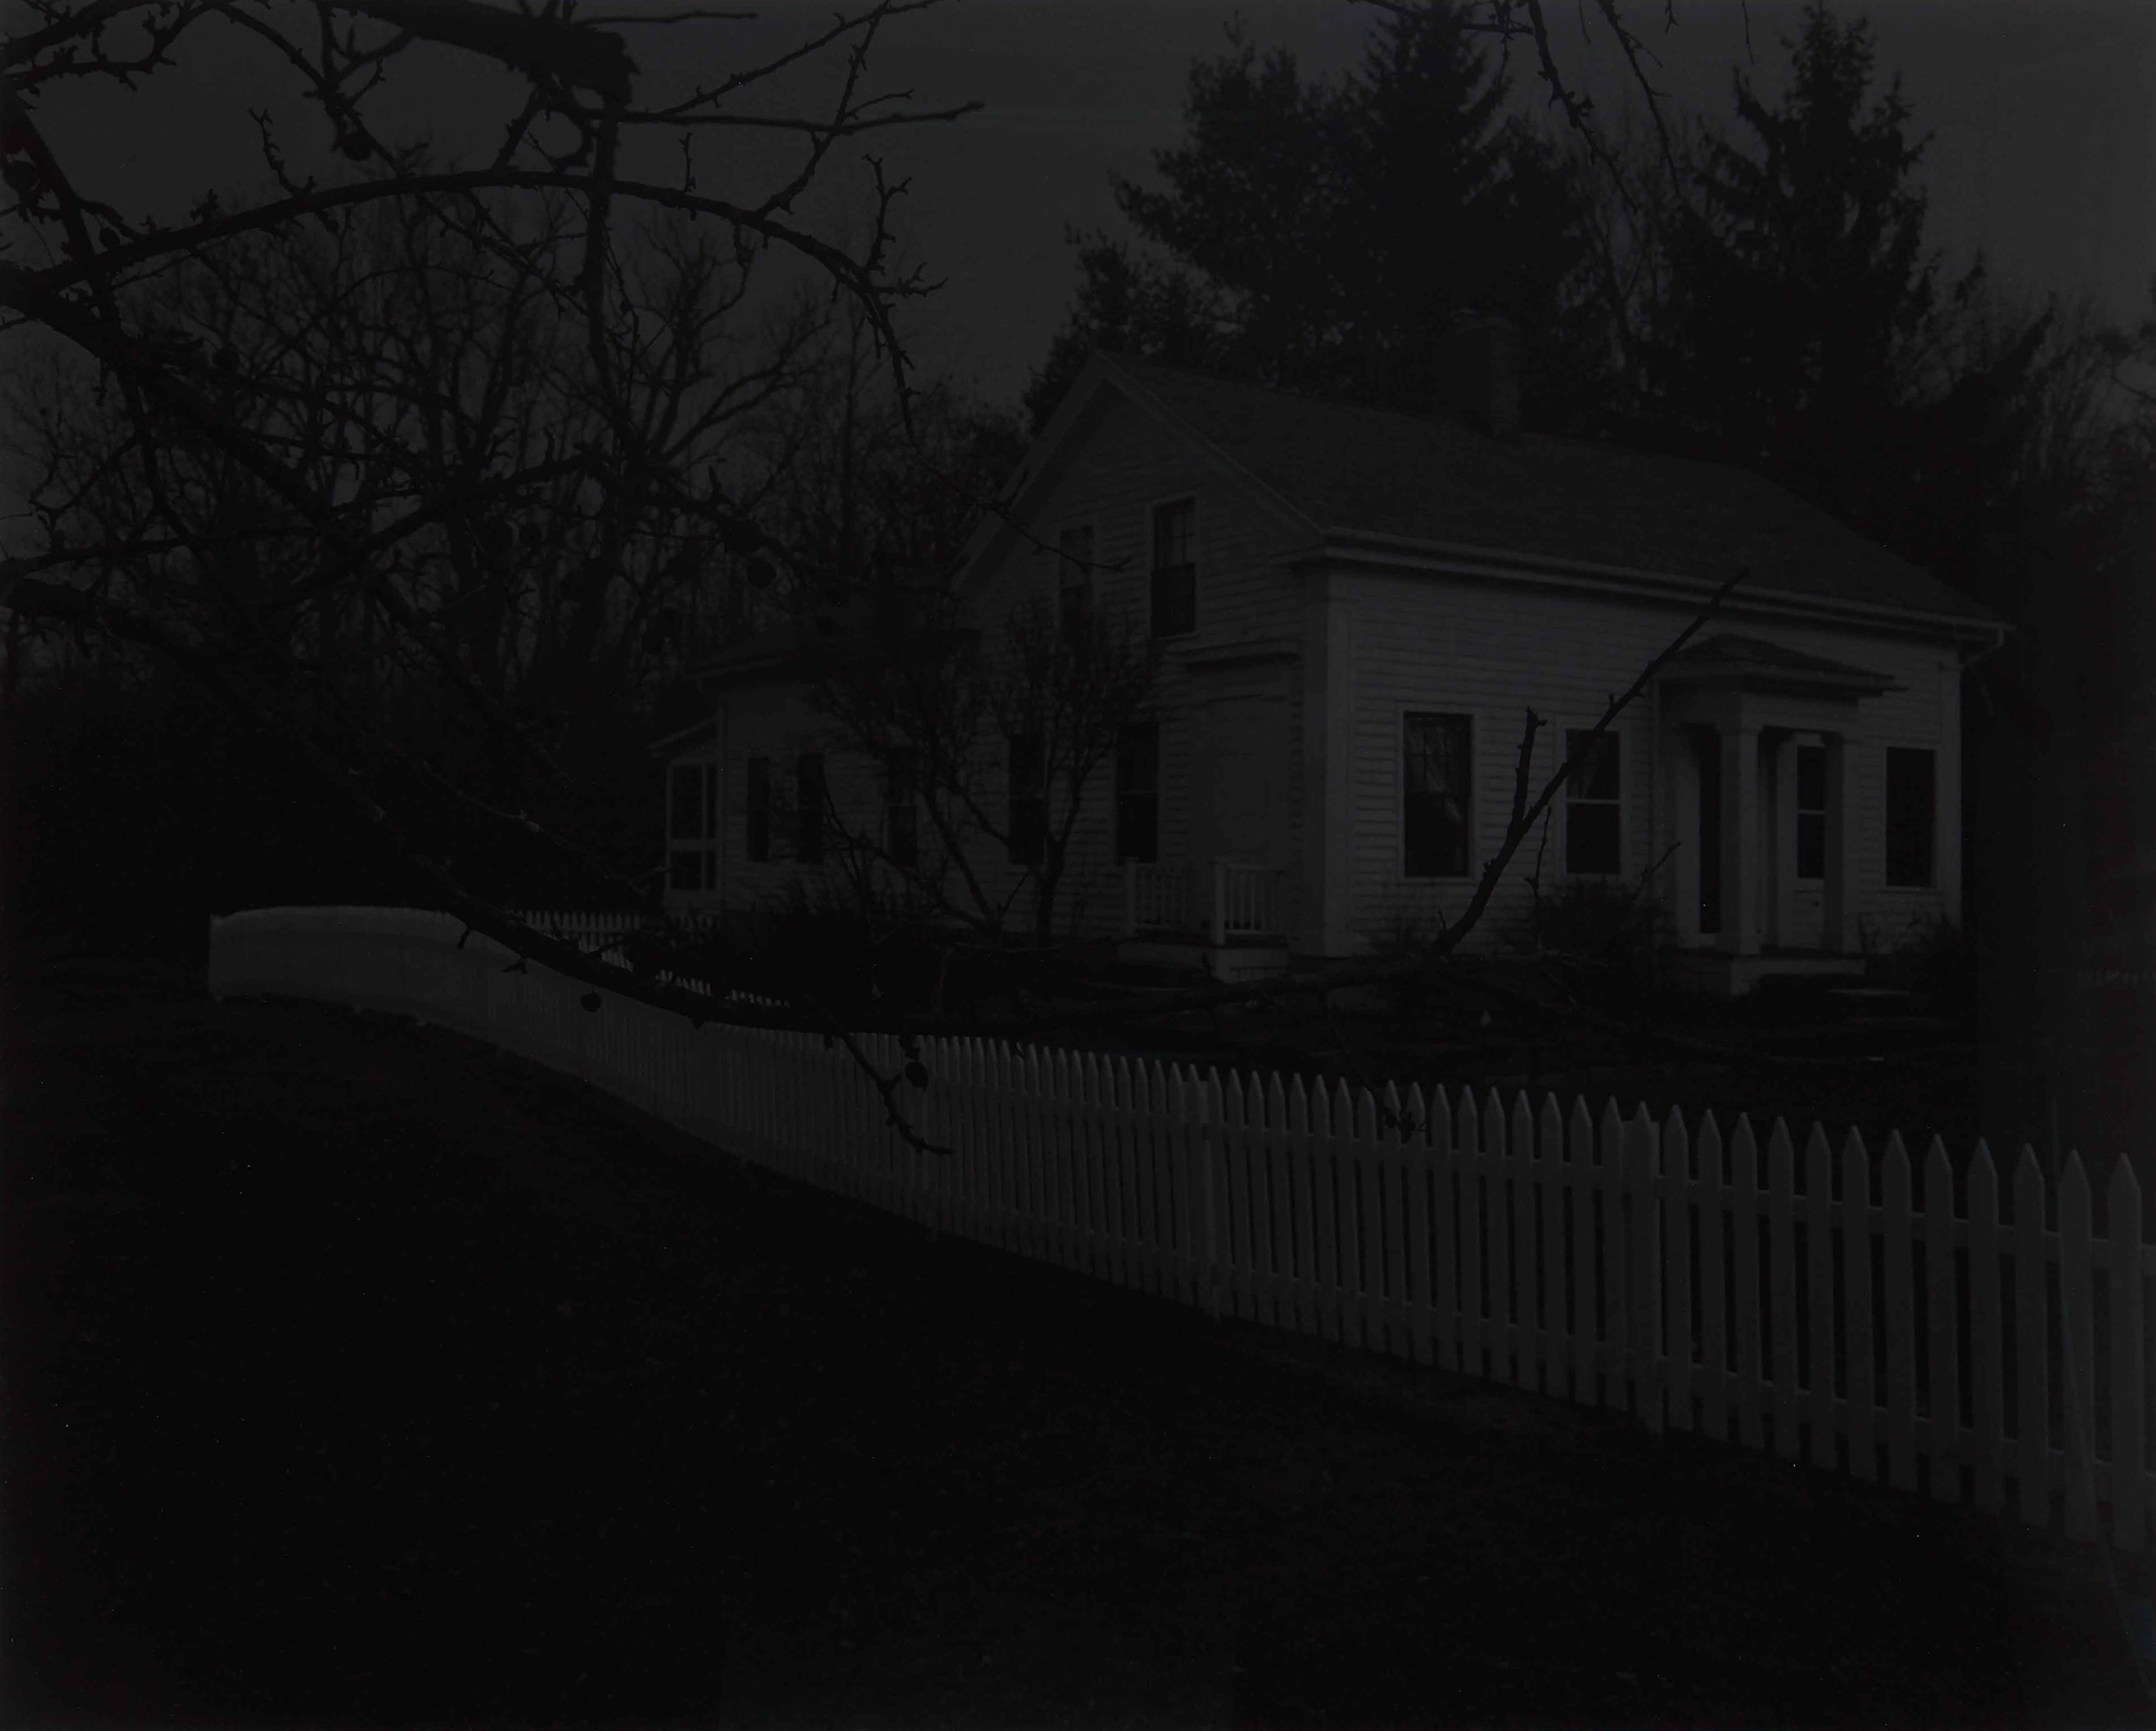 Dawoud Bey, Untitled #20 (Farmhouse and Picket Fence II), 2017. From the series Night Coming Tenderly, Black (2016–17). Gelatin silver print, 121.9 x 149.9 cm. Art Gallery of Ontario, Purchase, with funds from the Photography Curatorial Committee, 2019. © Dawoud Bey 2019/2251.